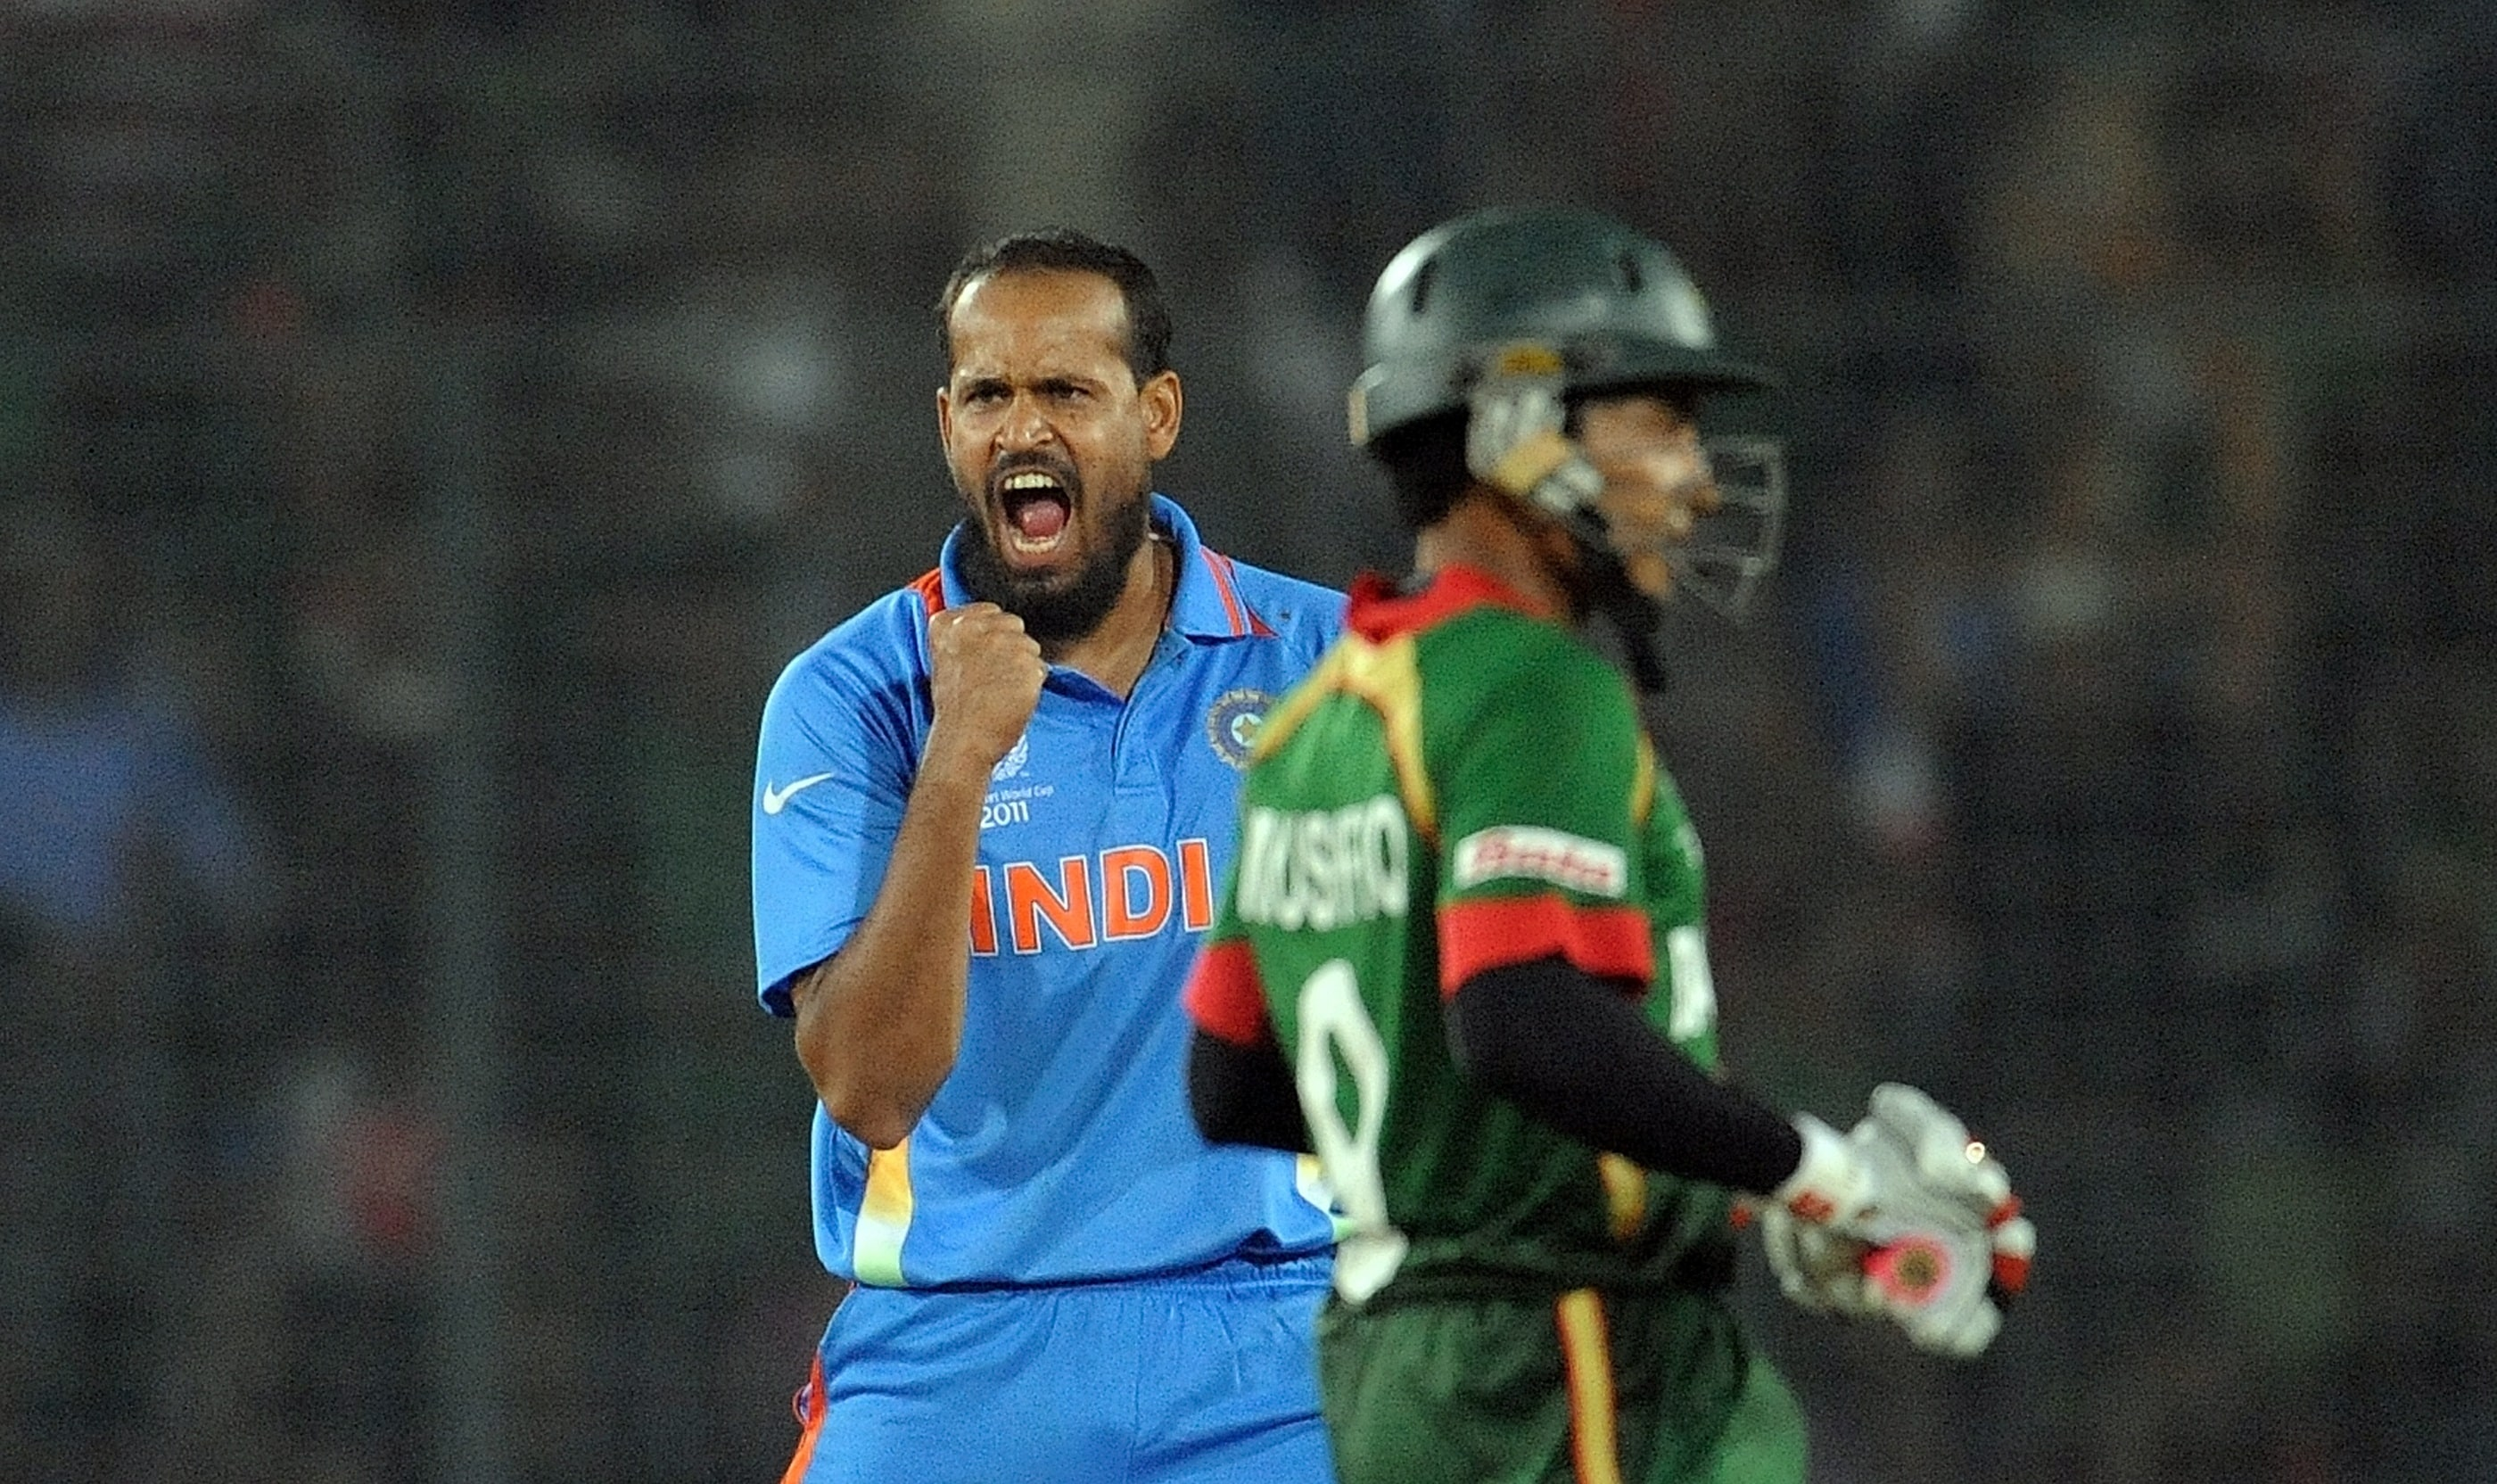 Munaf Patel reacts after taking the wicket of Bangladesh captain Shakib Al Hasan during the first match in the World Cup tournament between Bangladesh and India at the Sher-e Bangla National Stadium in Dhaka. (AFP Photo)